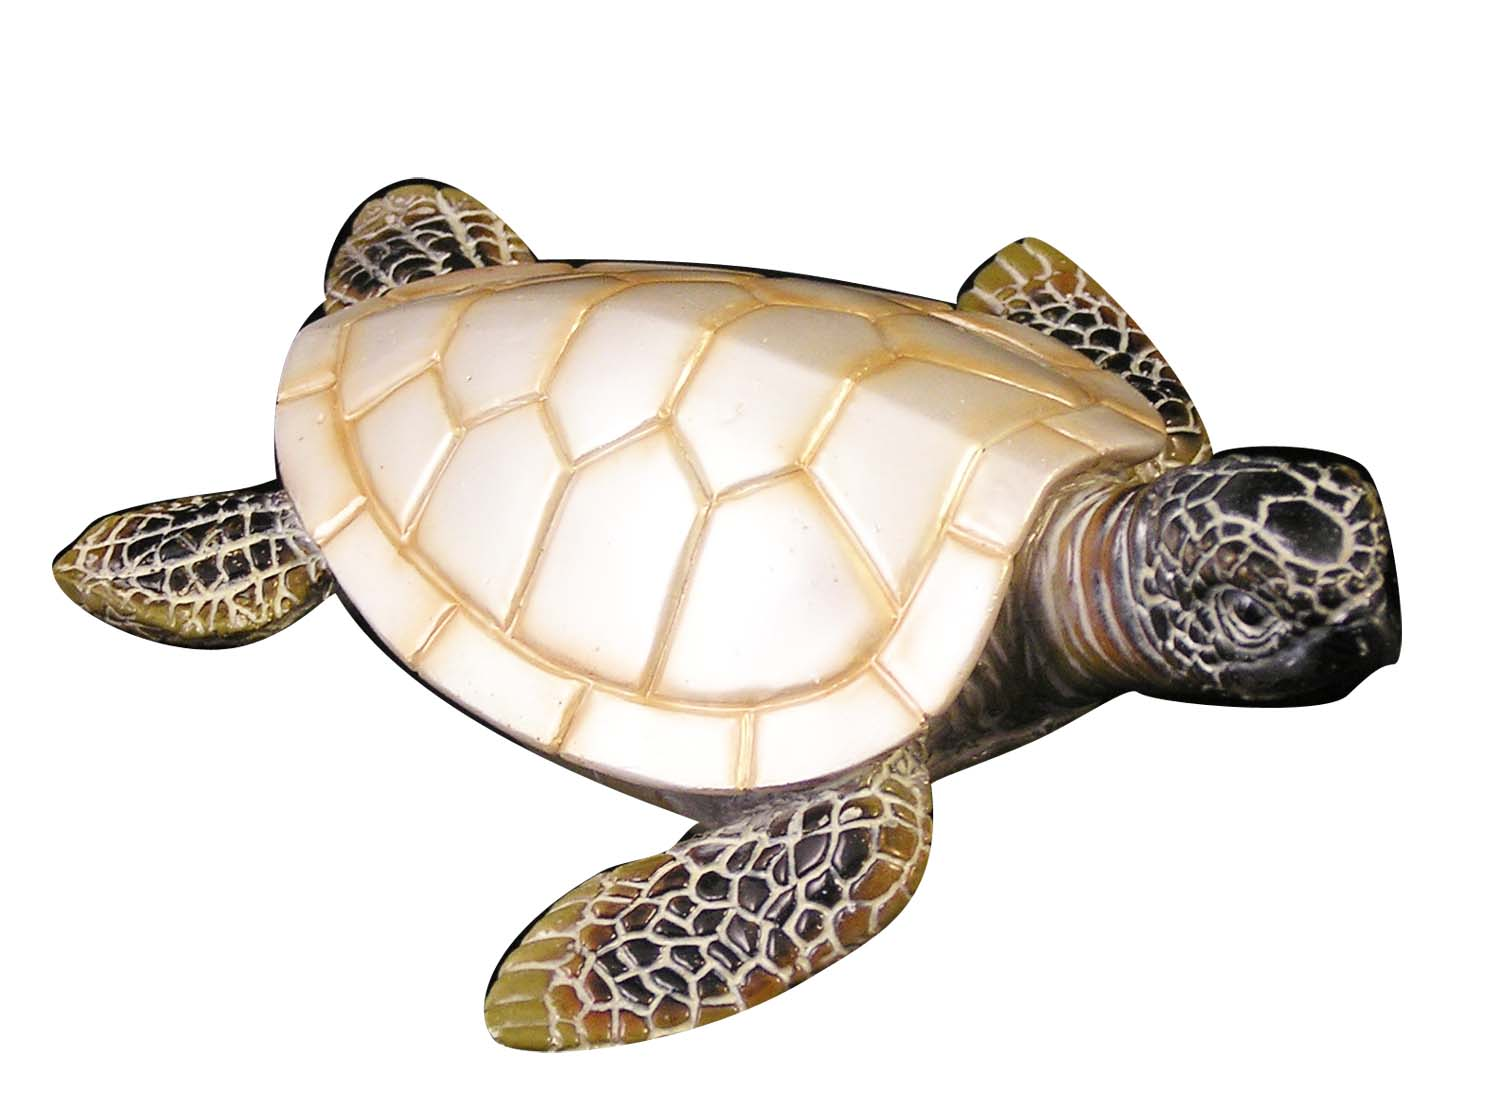 FIGURE POLY TURTLE 2.2